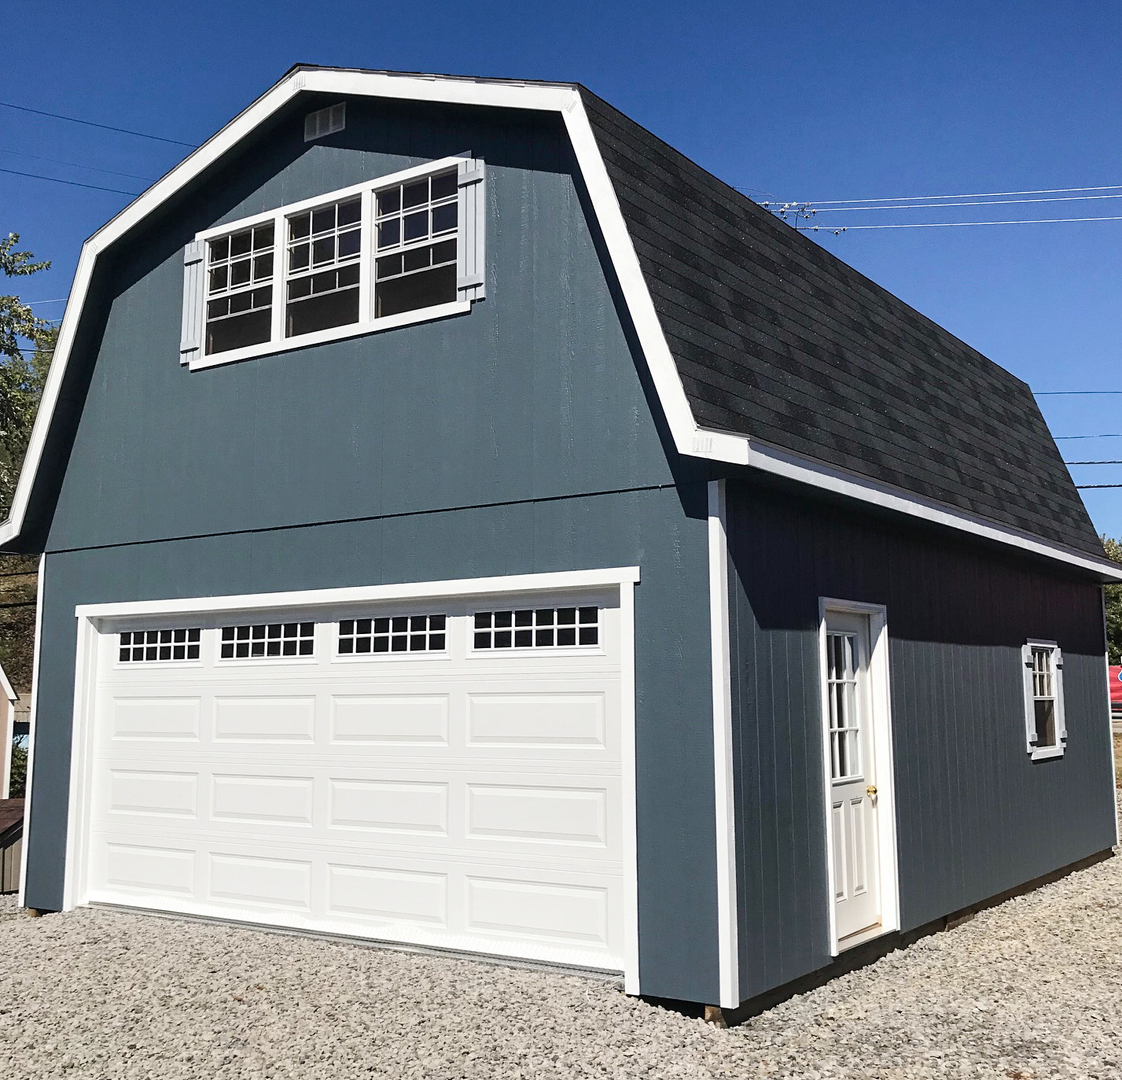 garages barn barns boise idaho new home pole garage remodeling